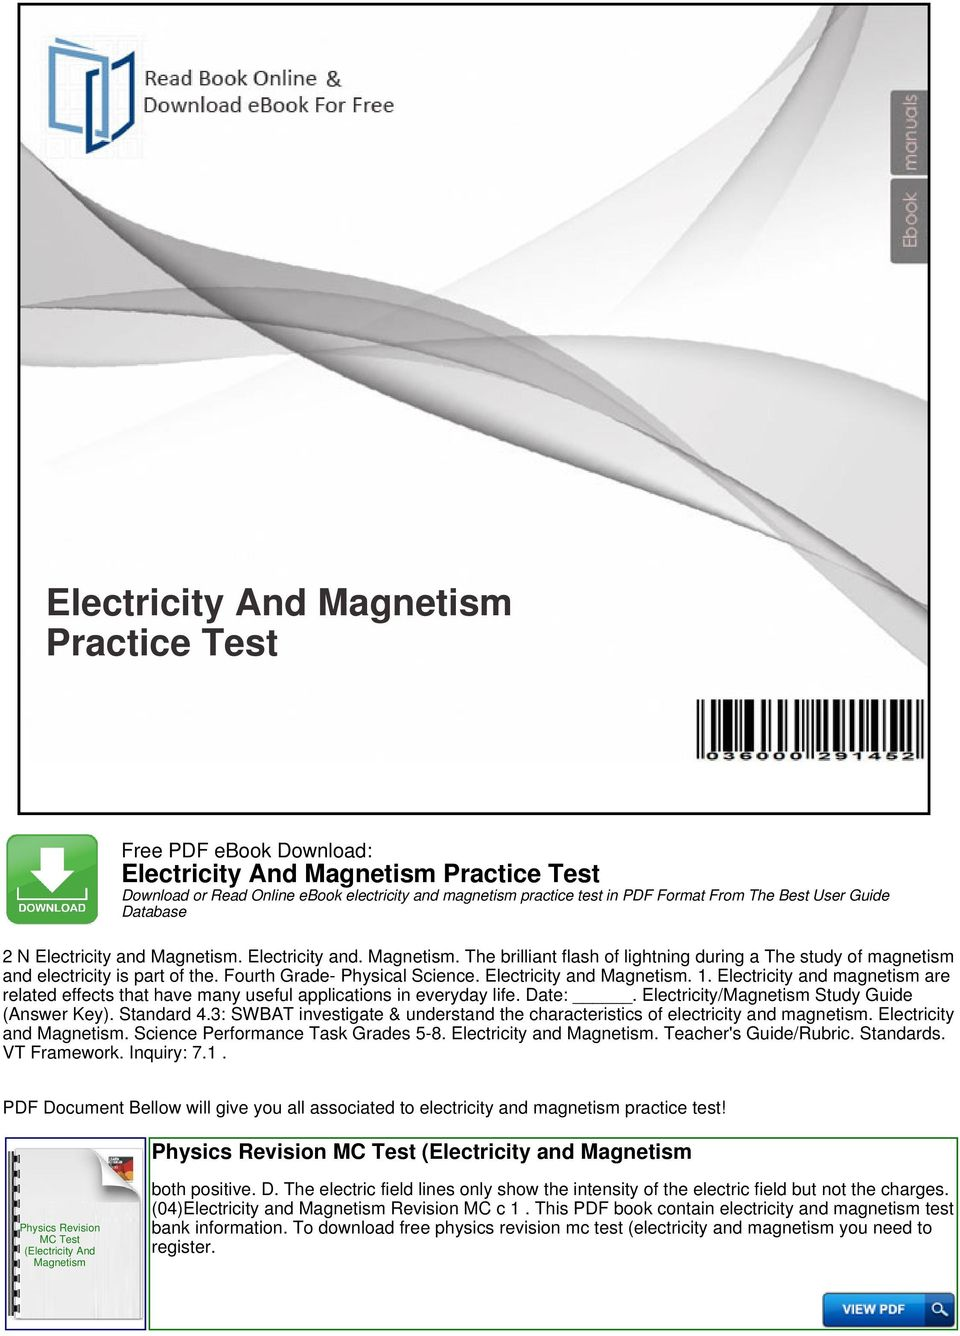 Electricity And Magnetism Practice Test - PDF